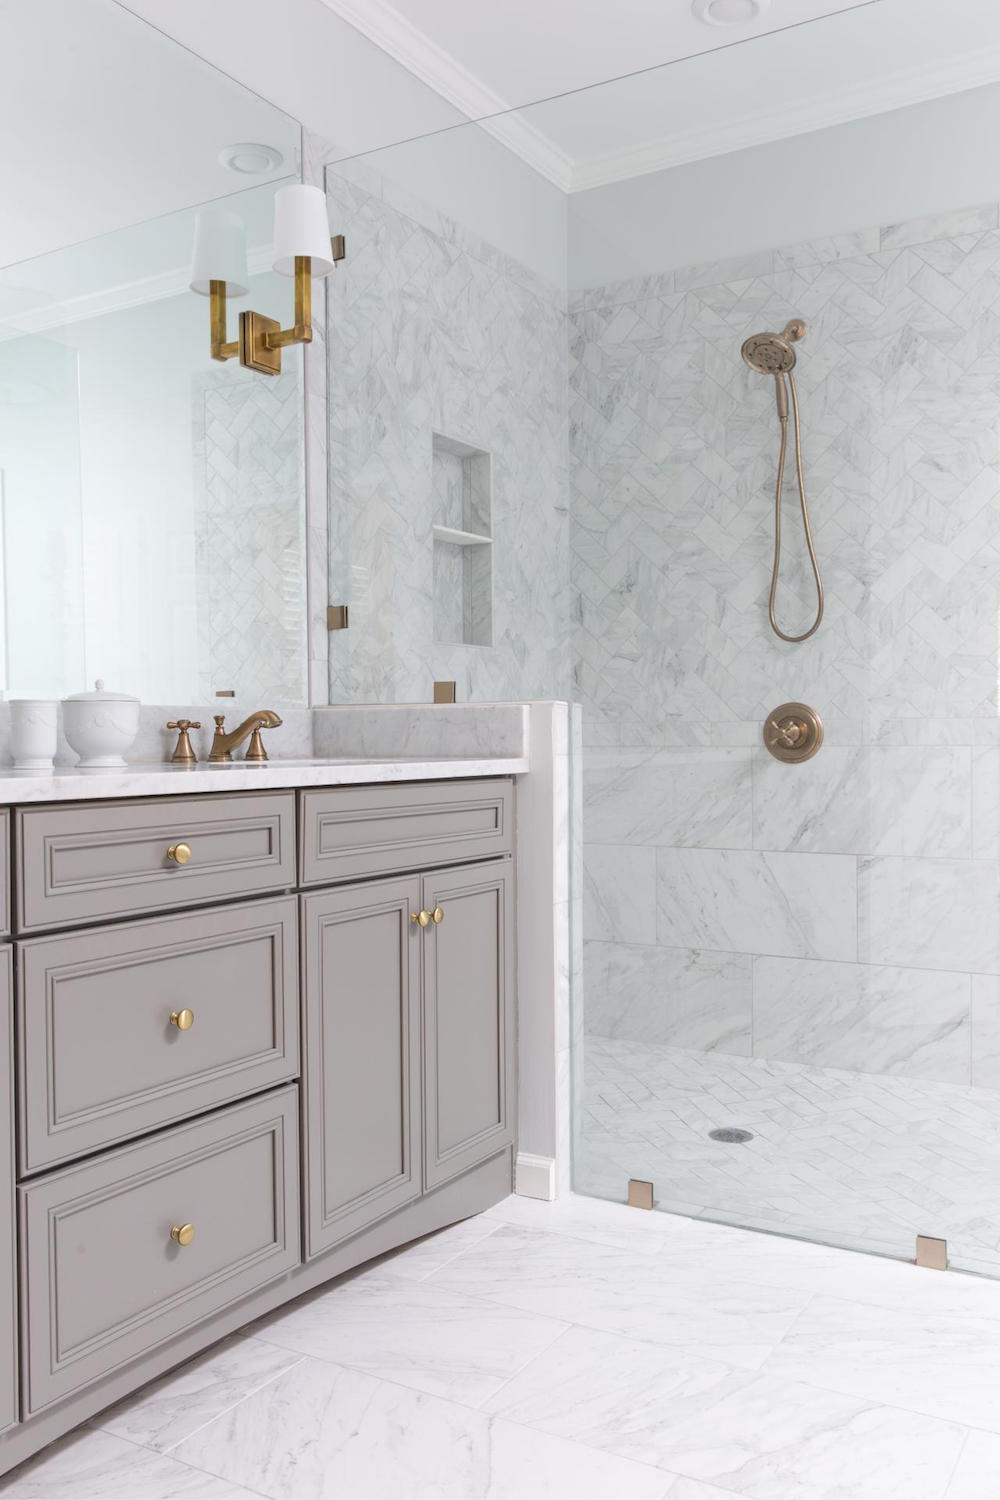 Brass sconces in bathroom via HGTV